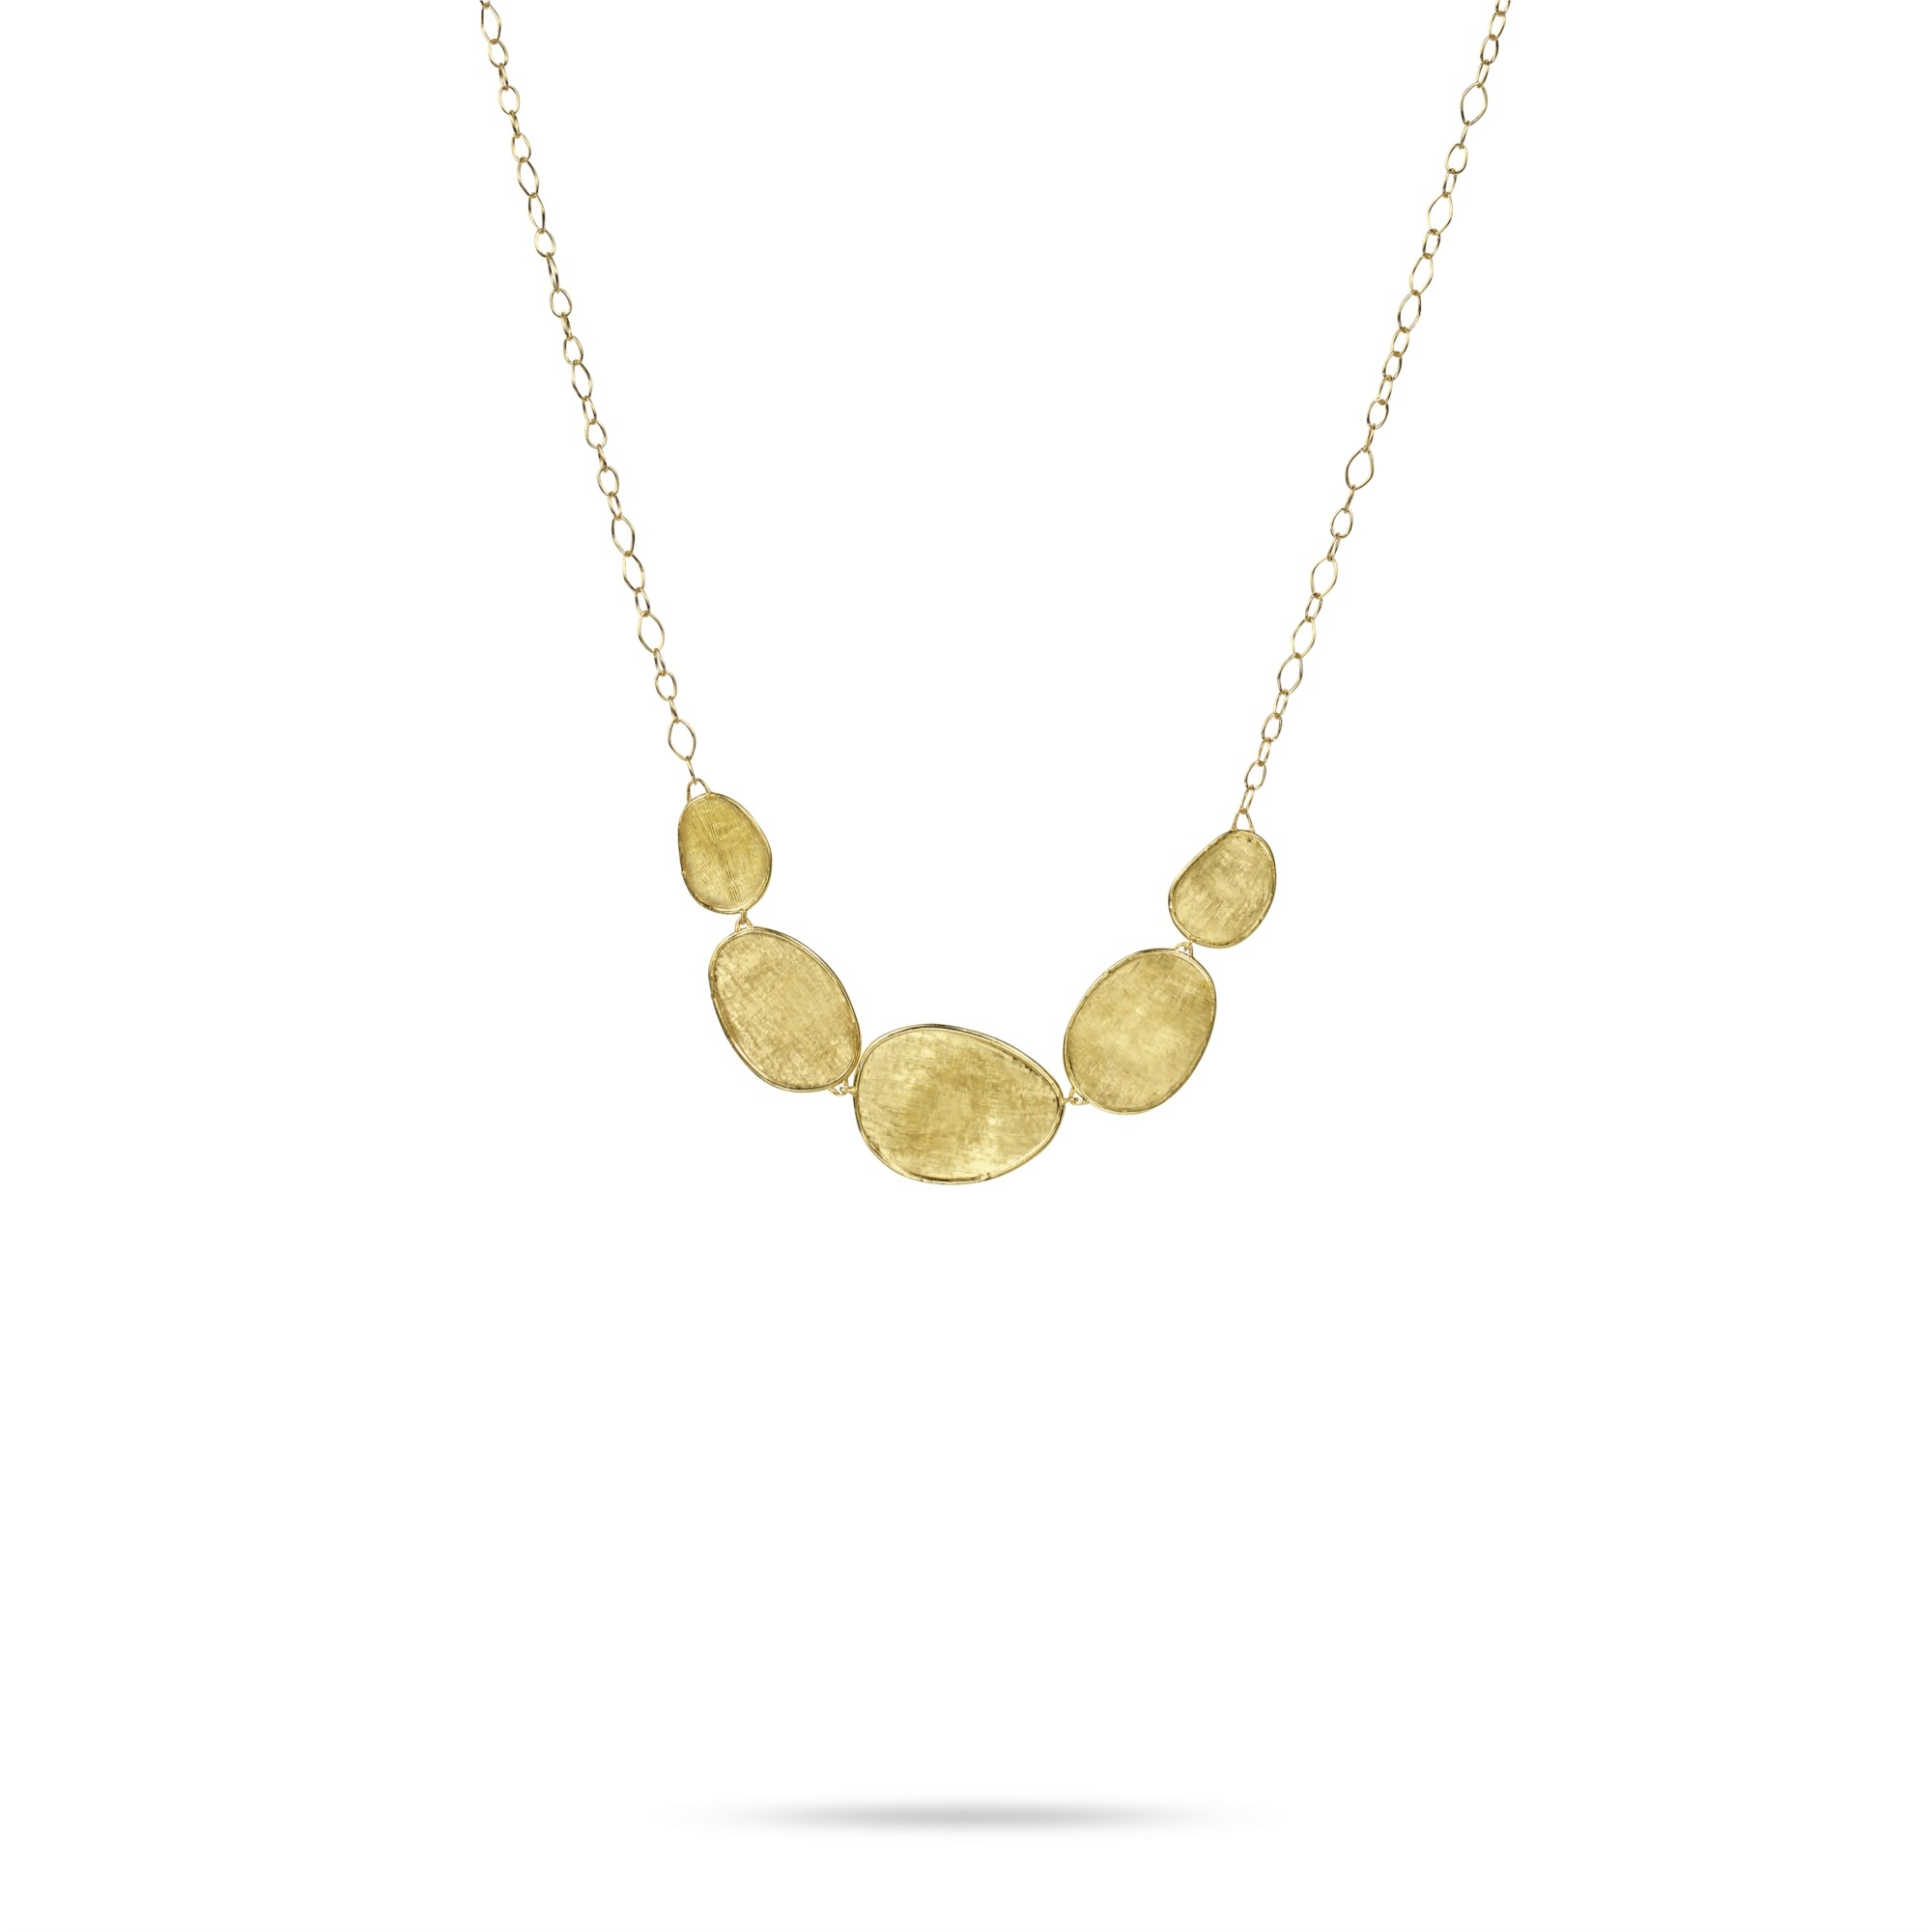 Marco Bicego 18K Yellow Gold    Gold Necklace CB1779 Y